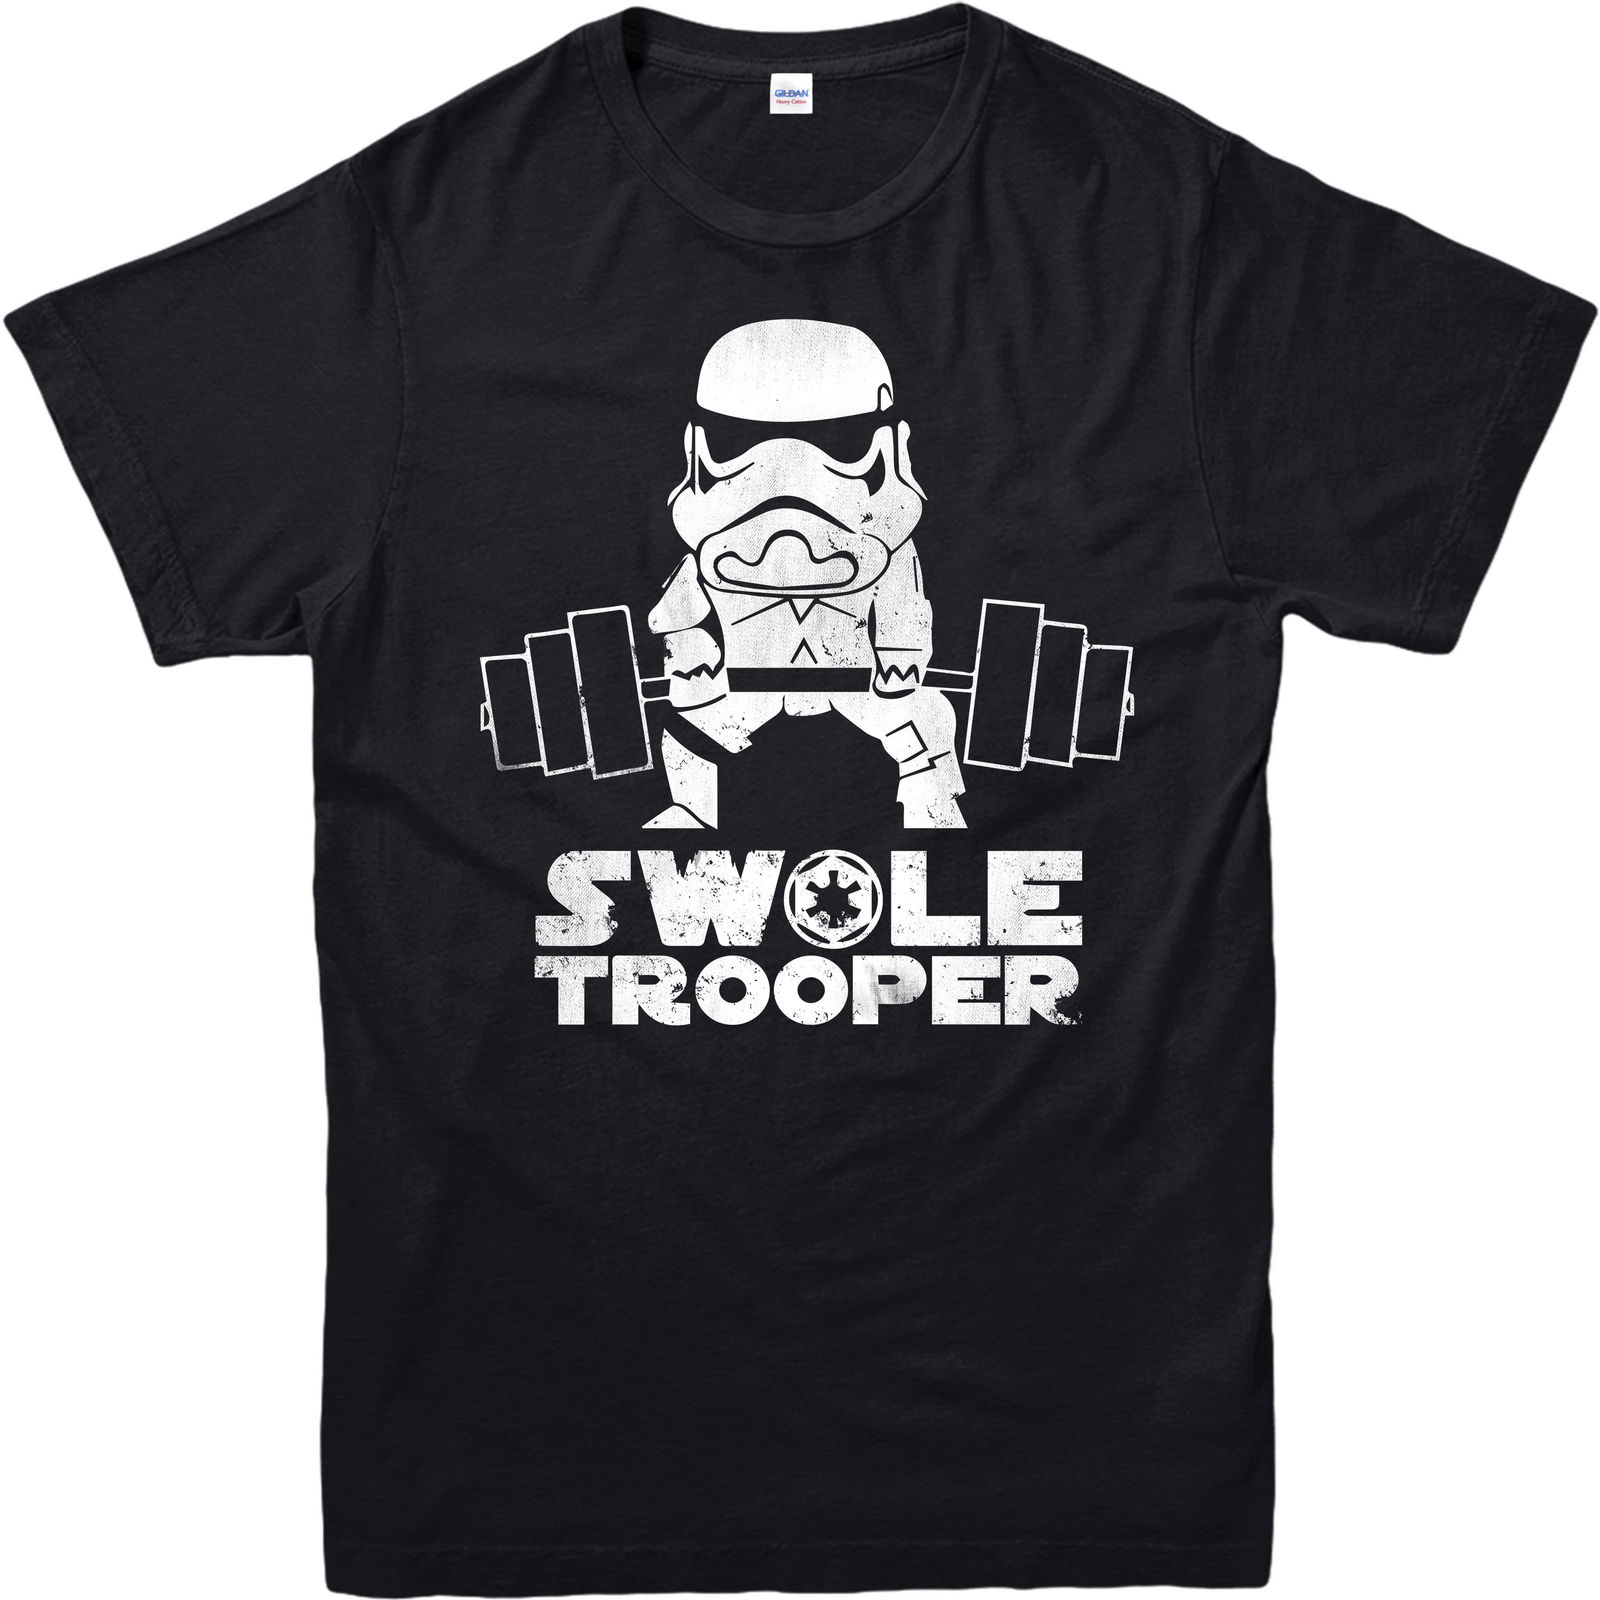 Star Wars T Shirt Swole Trooper Gym Spoof Bodybuilding Adult and kids Sizes Youth Round Collar Customized T Shirts free shipping in T Shirts from Men 39 s Clothing